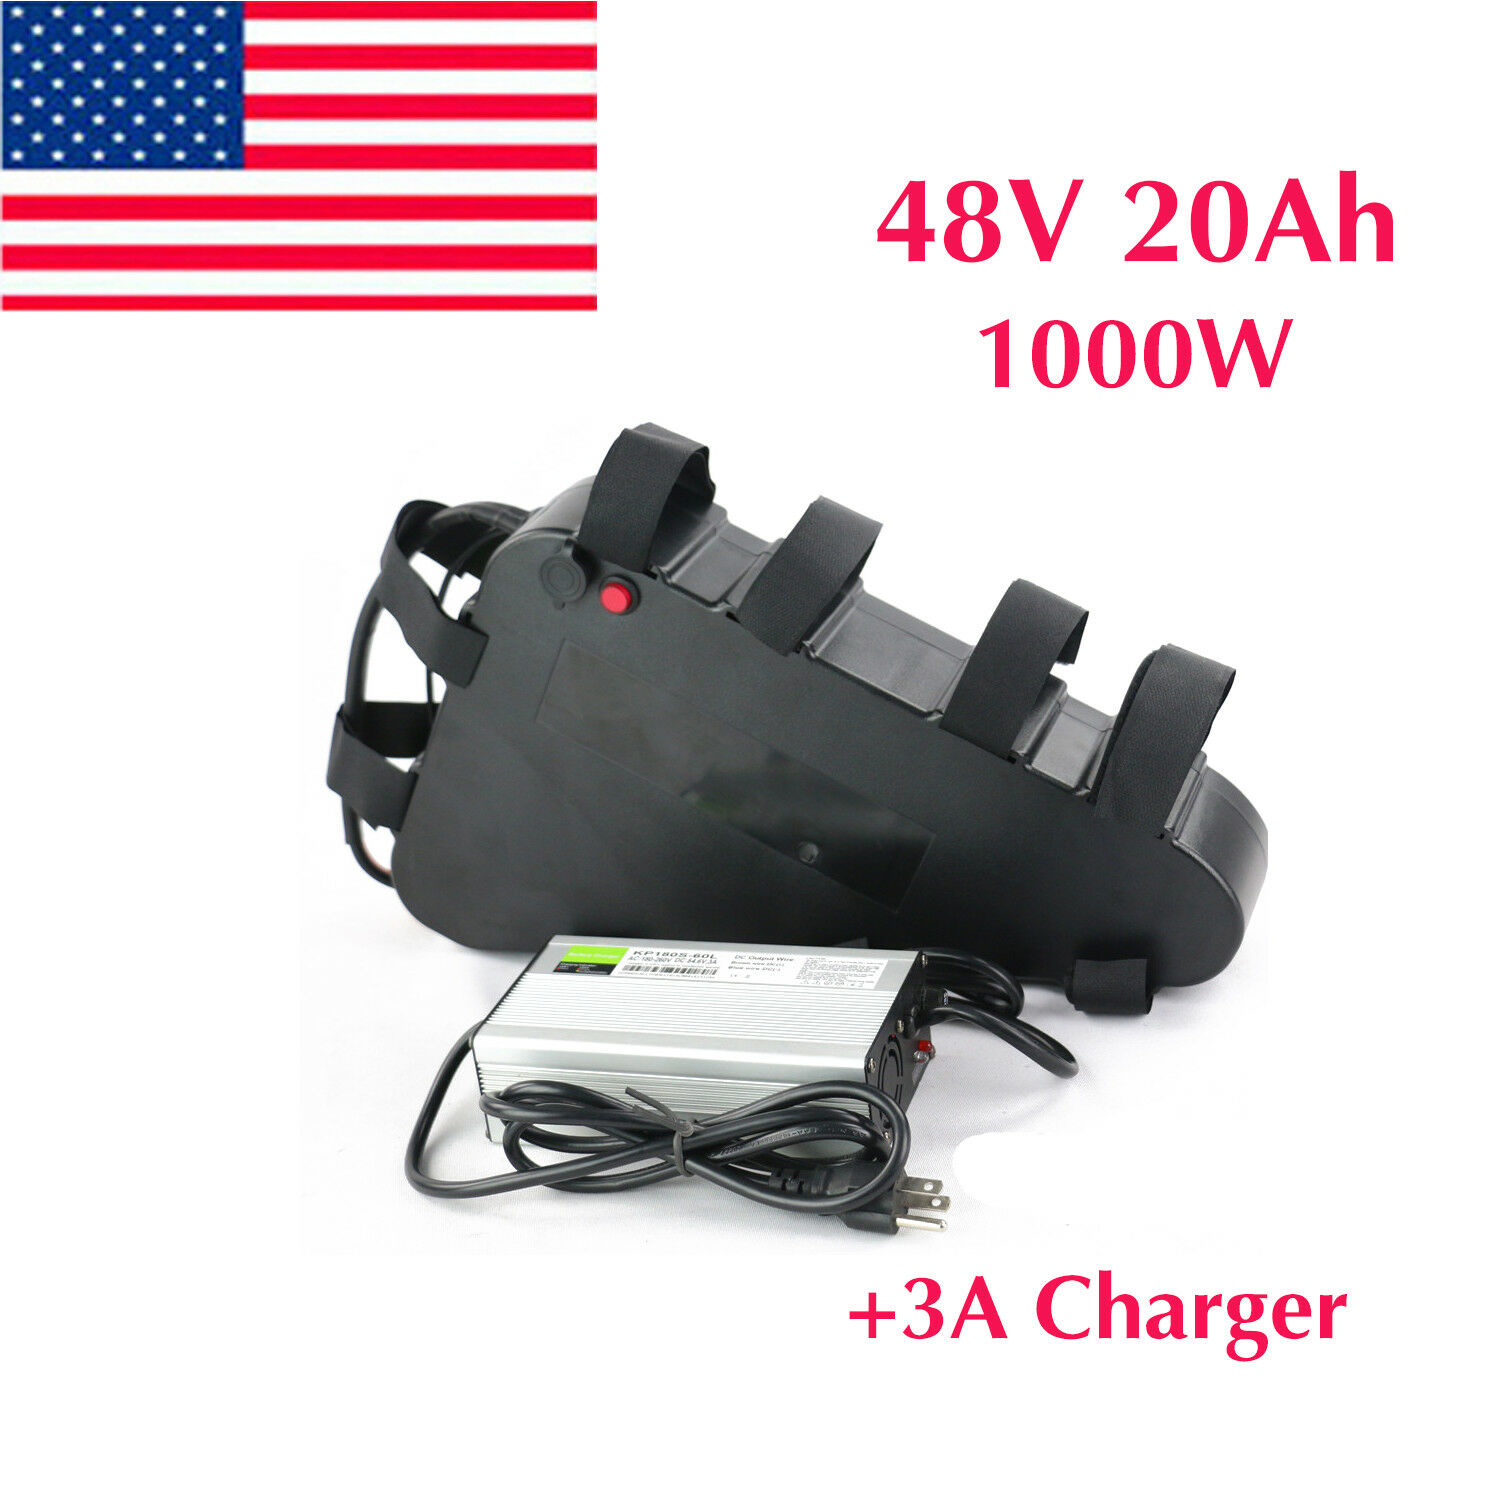 48V 20Ah Li-oin Lithium Triangle Battery 1000W for Electric Bike +3A Charger